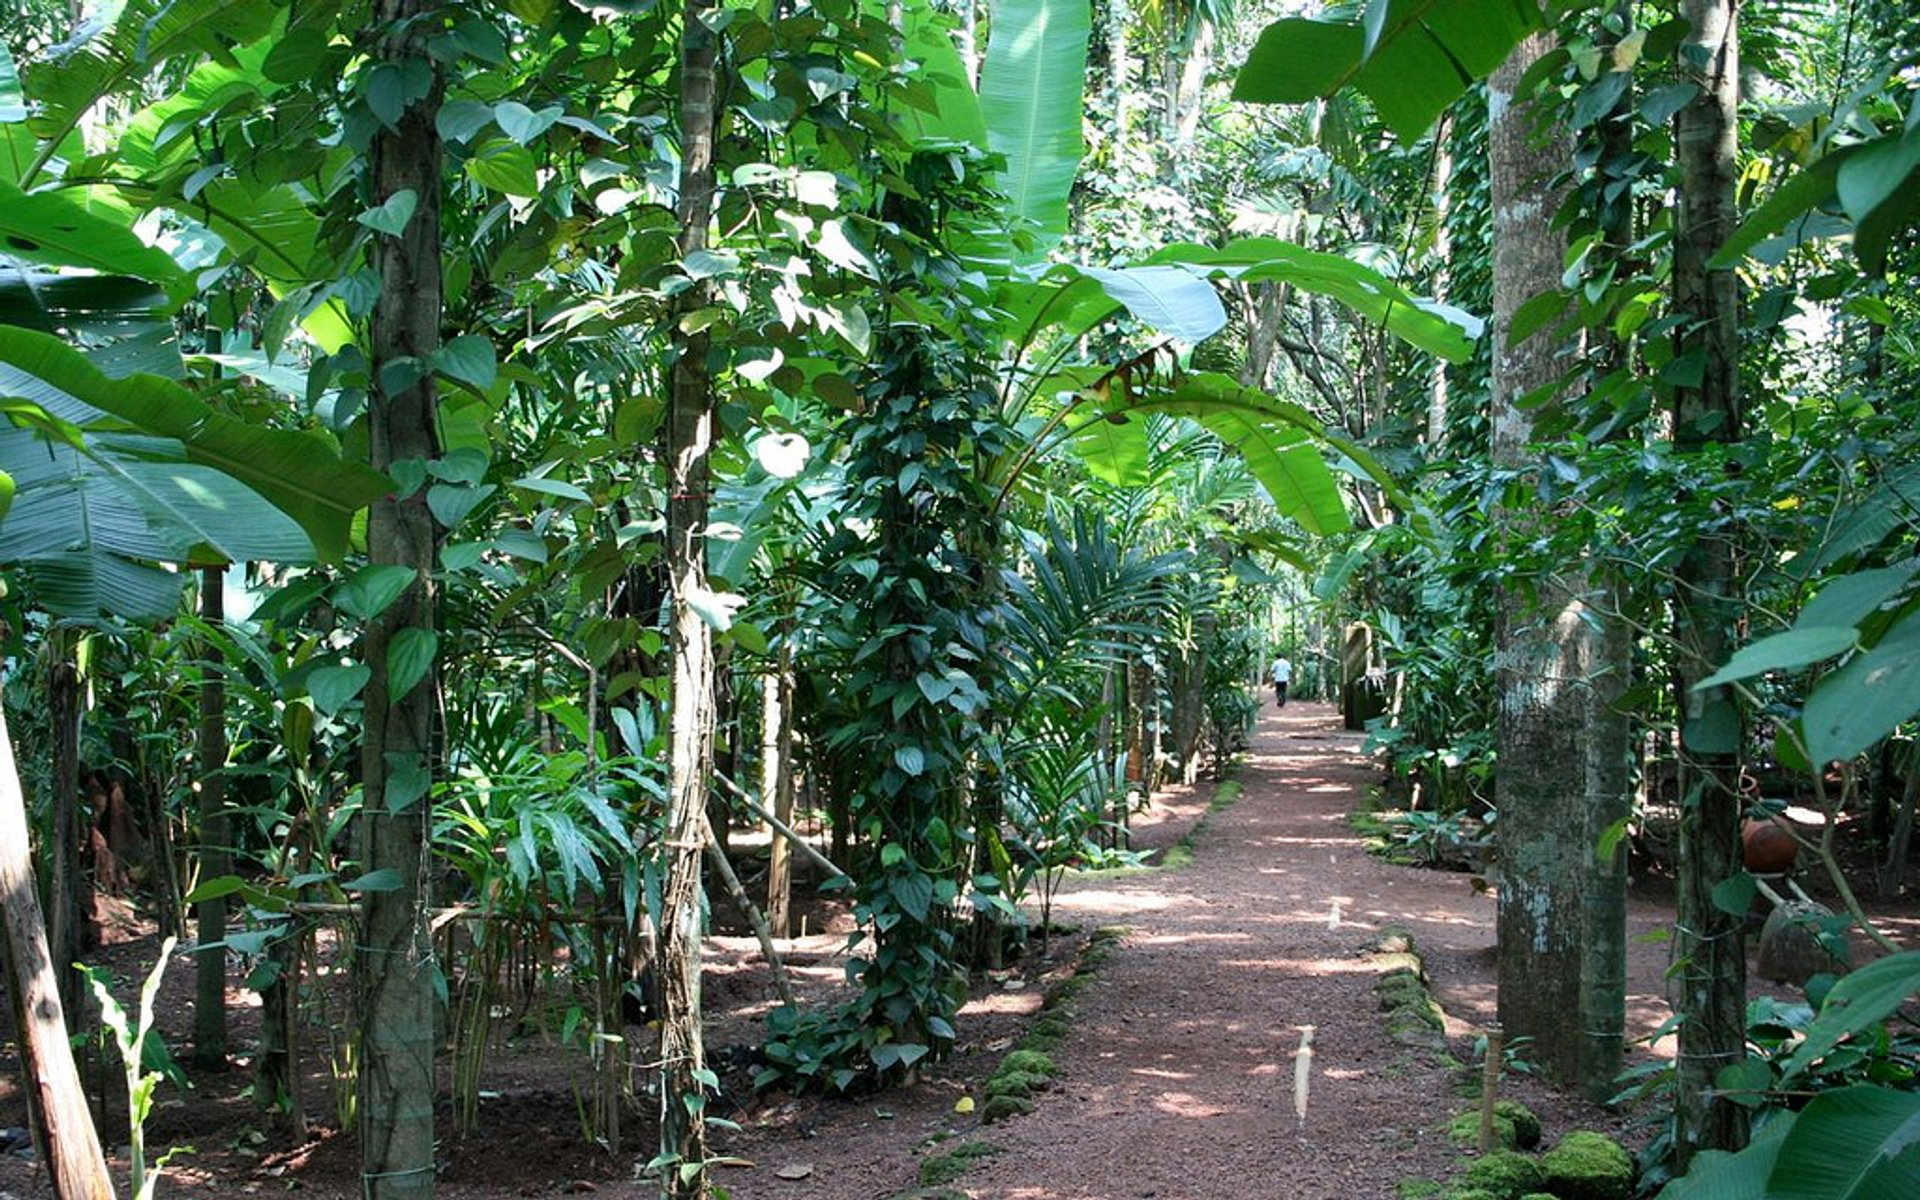 Spice garden on Tropical Spice Farm, Ponda 2020